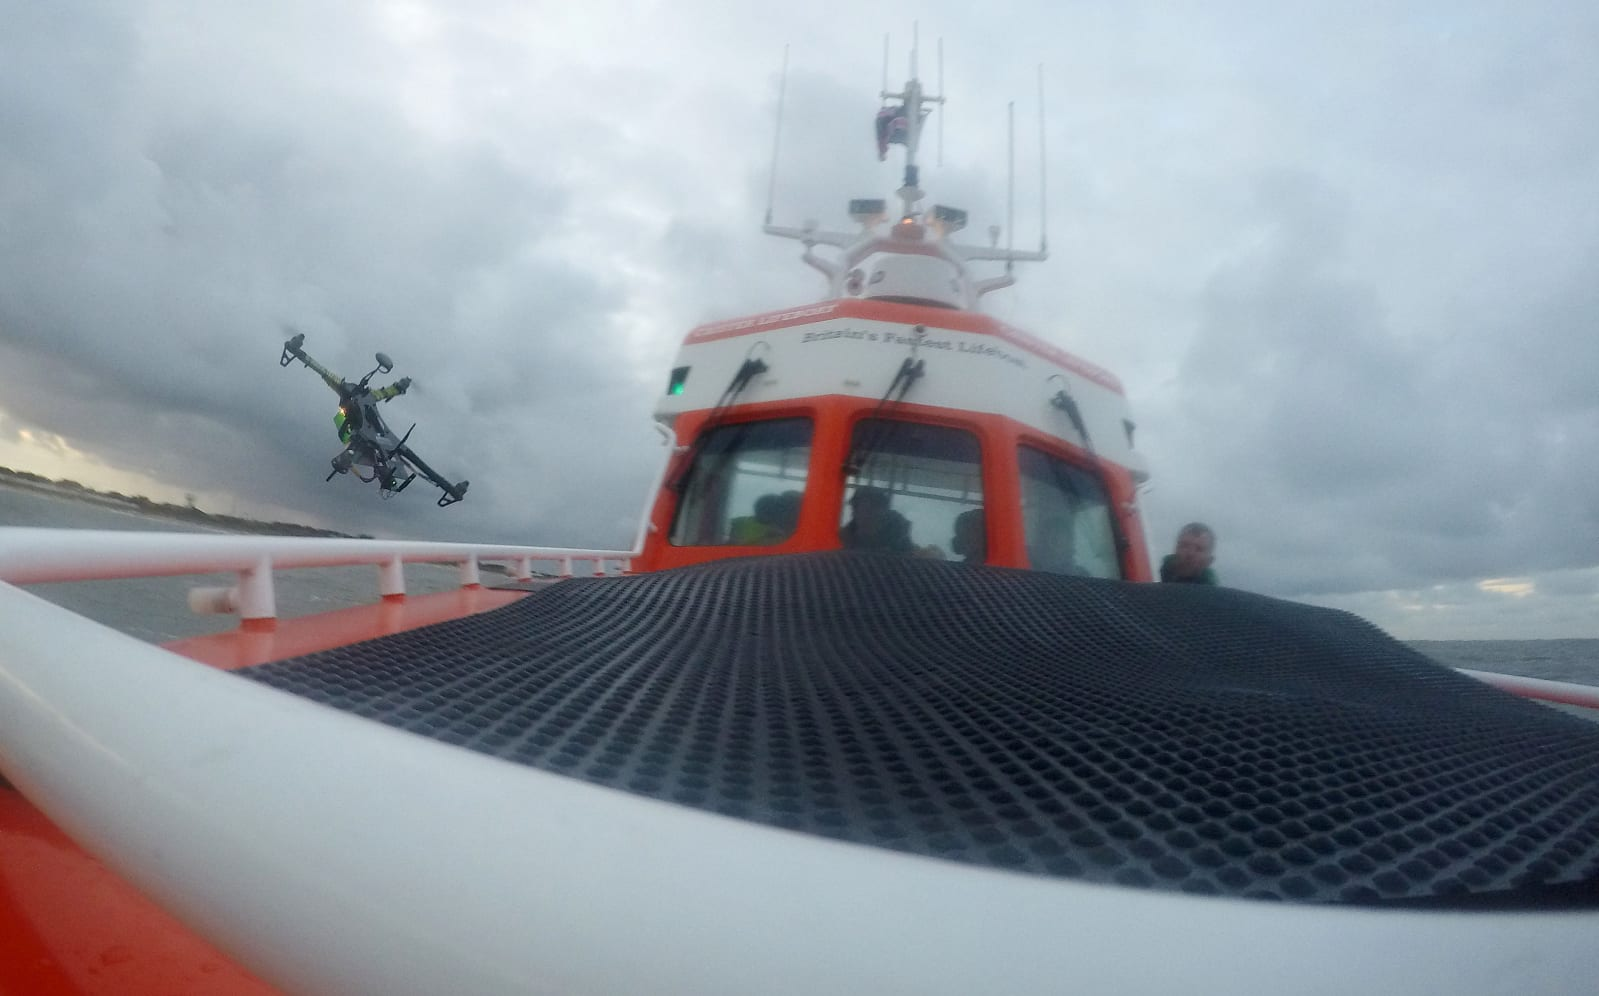 Lifeboat service at Caister trial drones